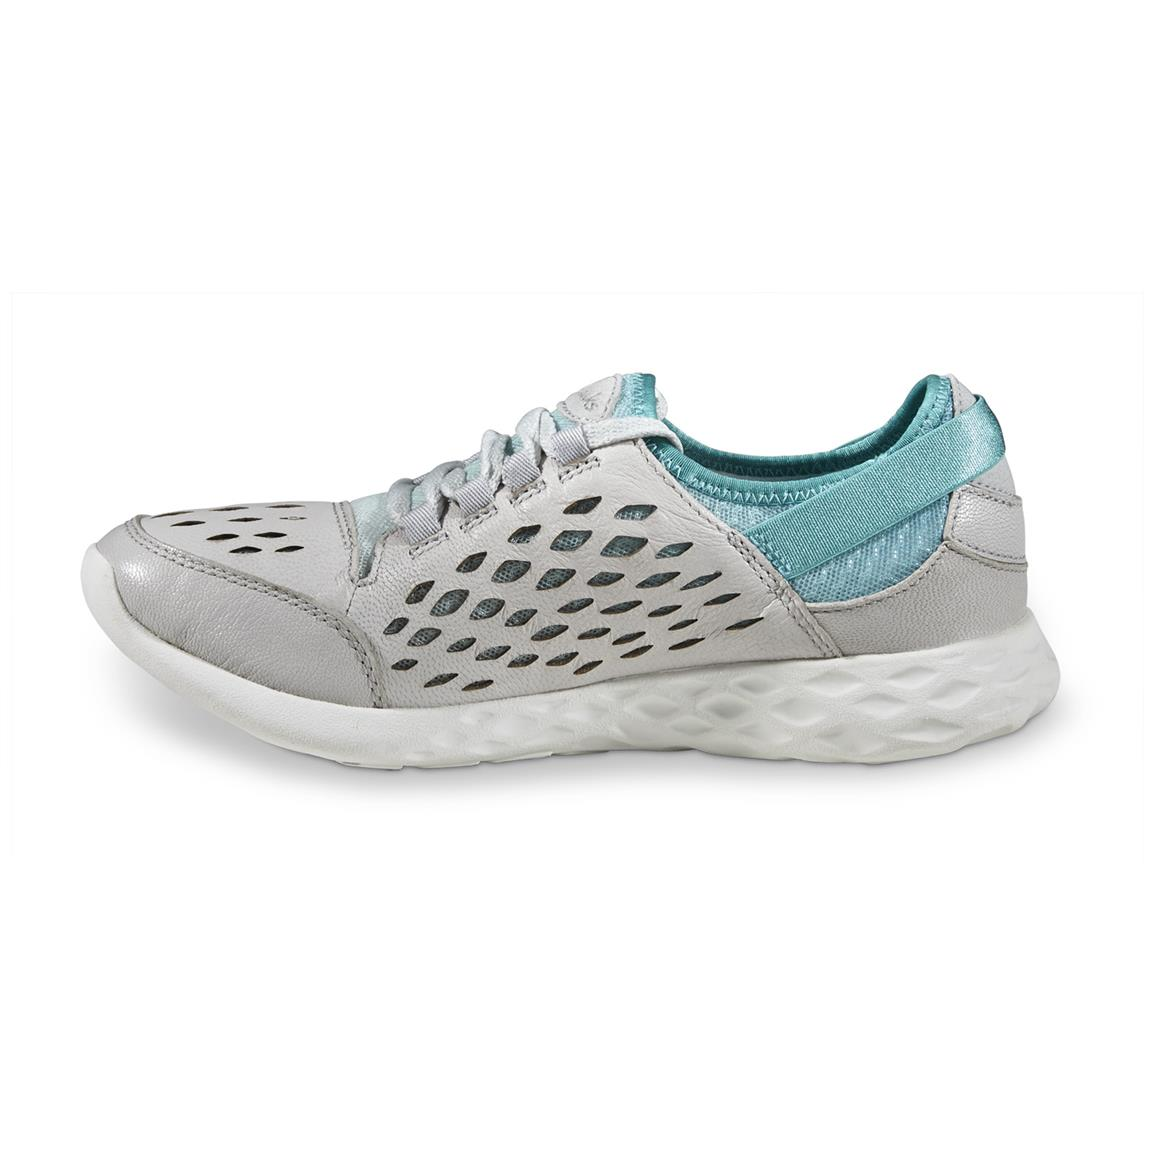 EVA midsole for support and comfort